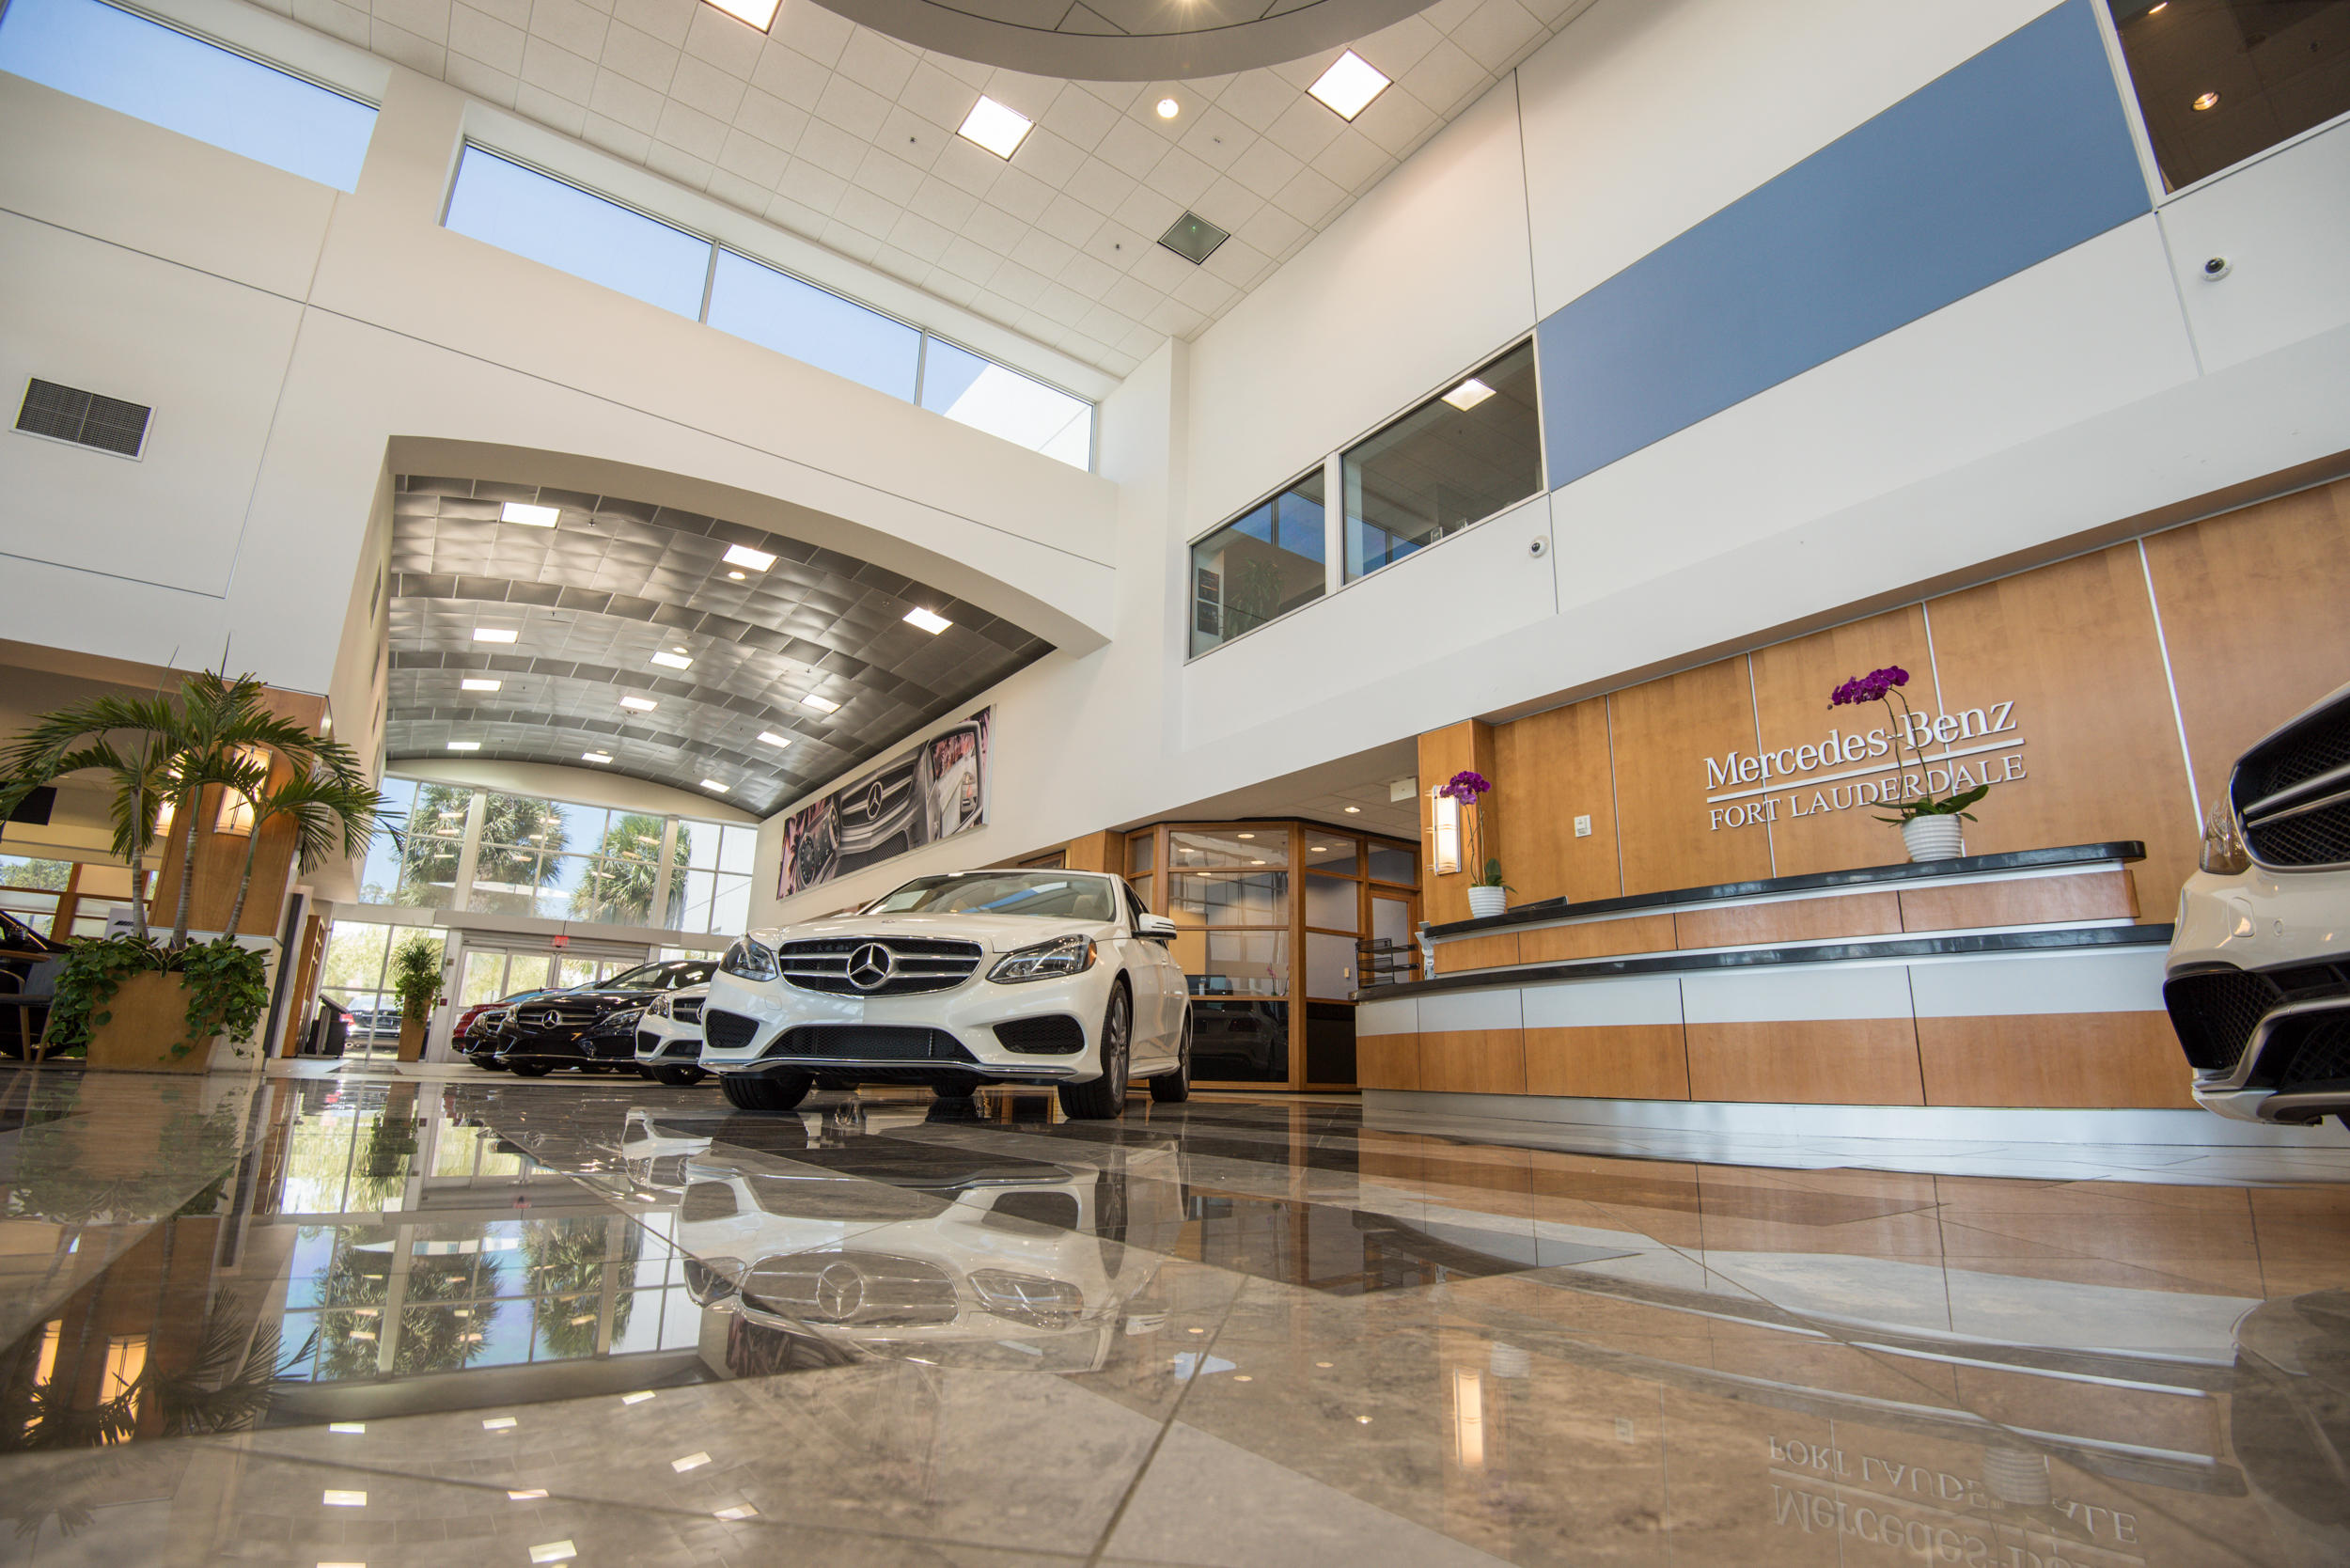 Great Mercedes Benz Of Ft. Lauderdale 2411 S Federal Hwy, Fort Lauderdale, FL  33316   YP.com